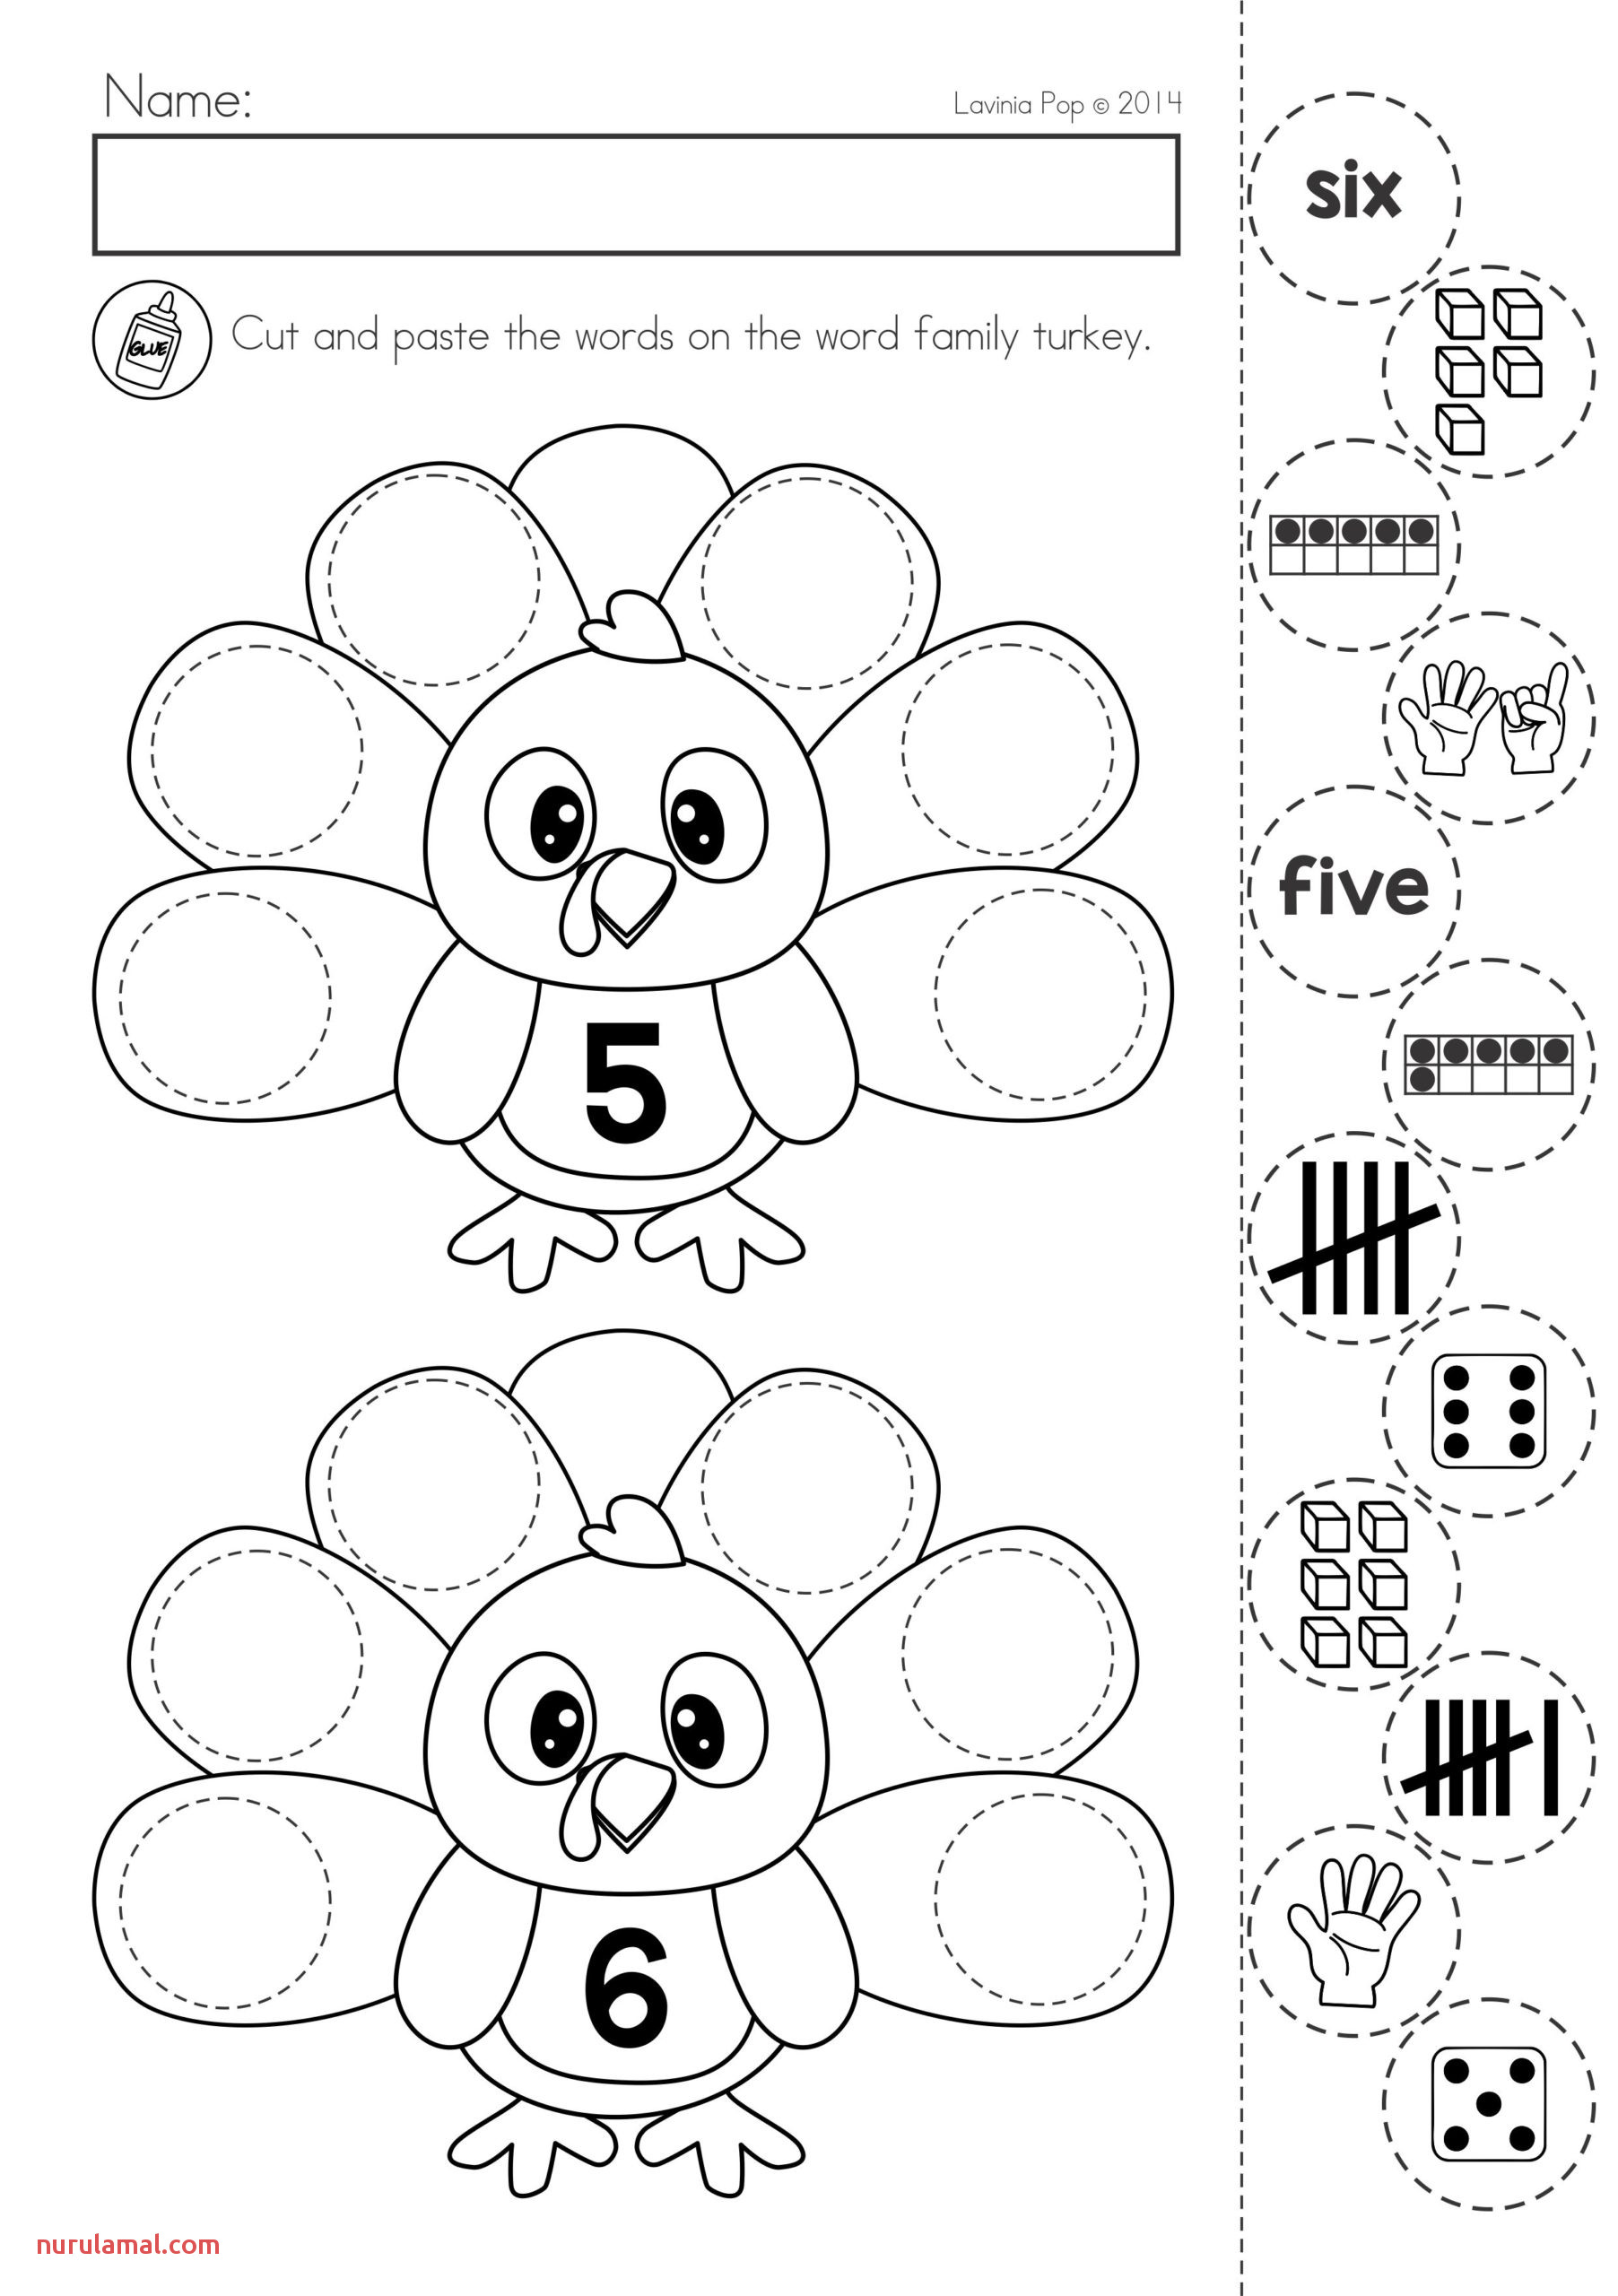 math solver with work free worksheets fractions 4th grade function nouns worksheet translation problems singular and plural sentences pdf printable toddler lesson plans spelling first scaled